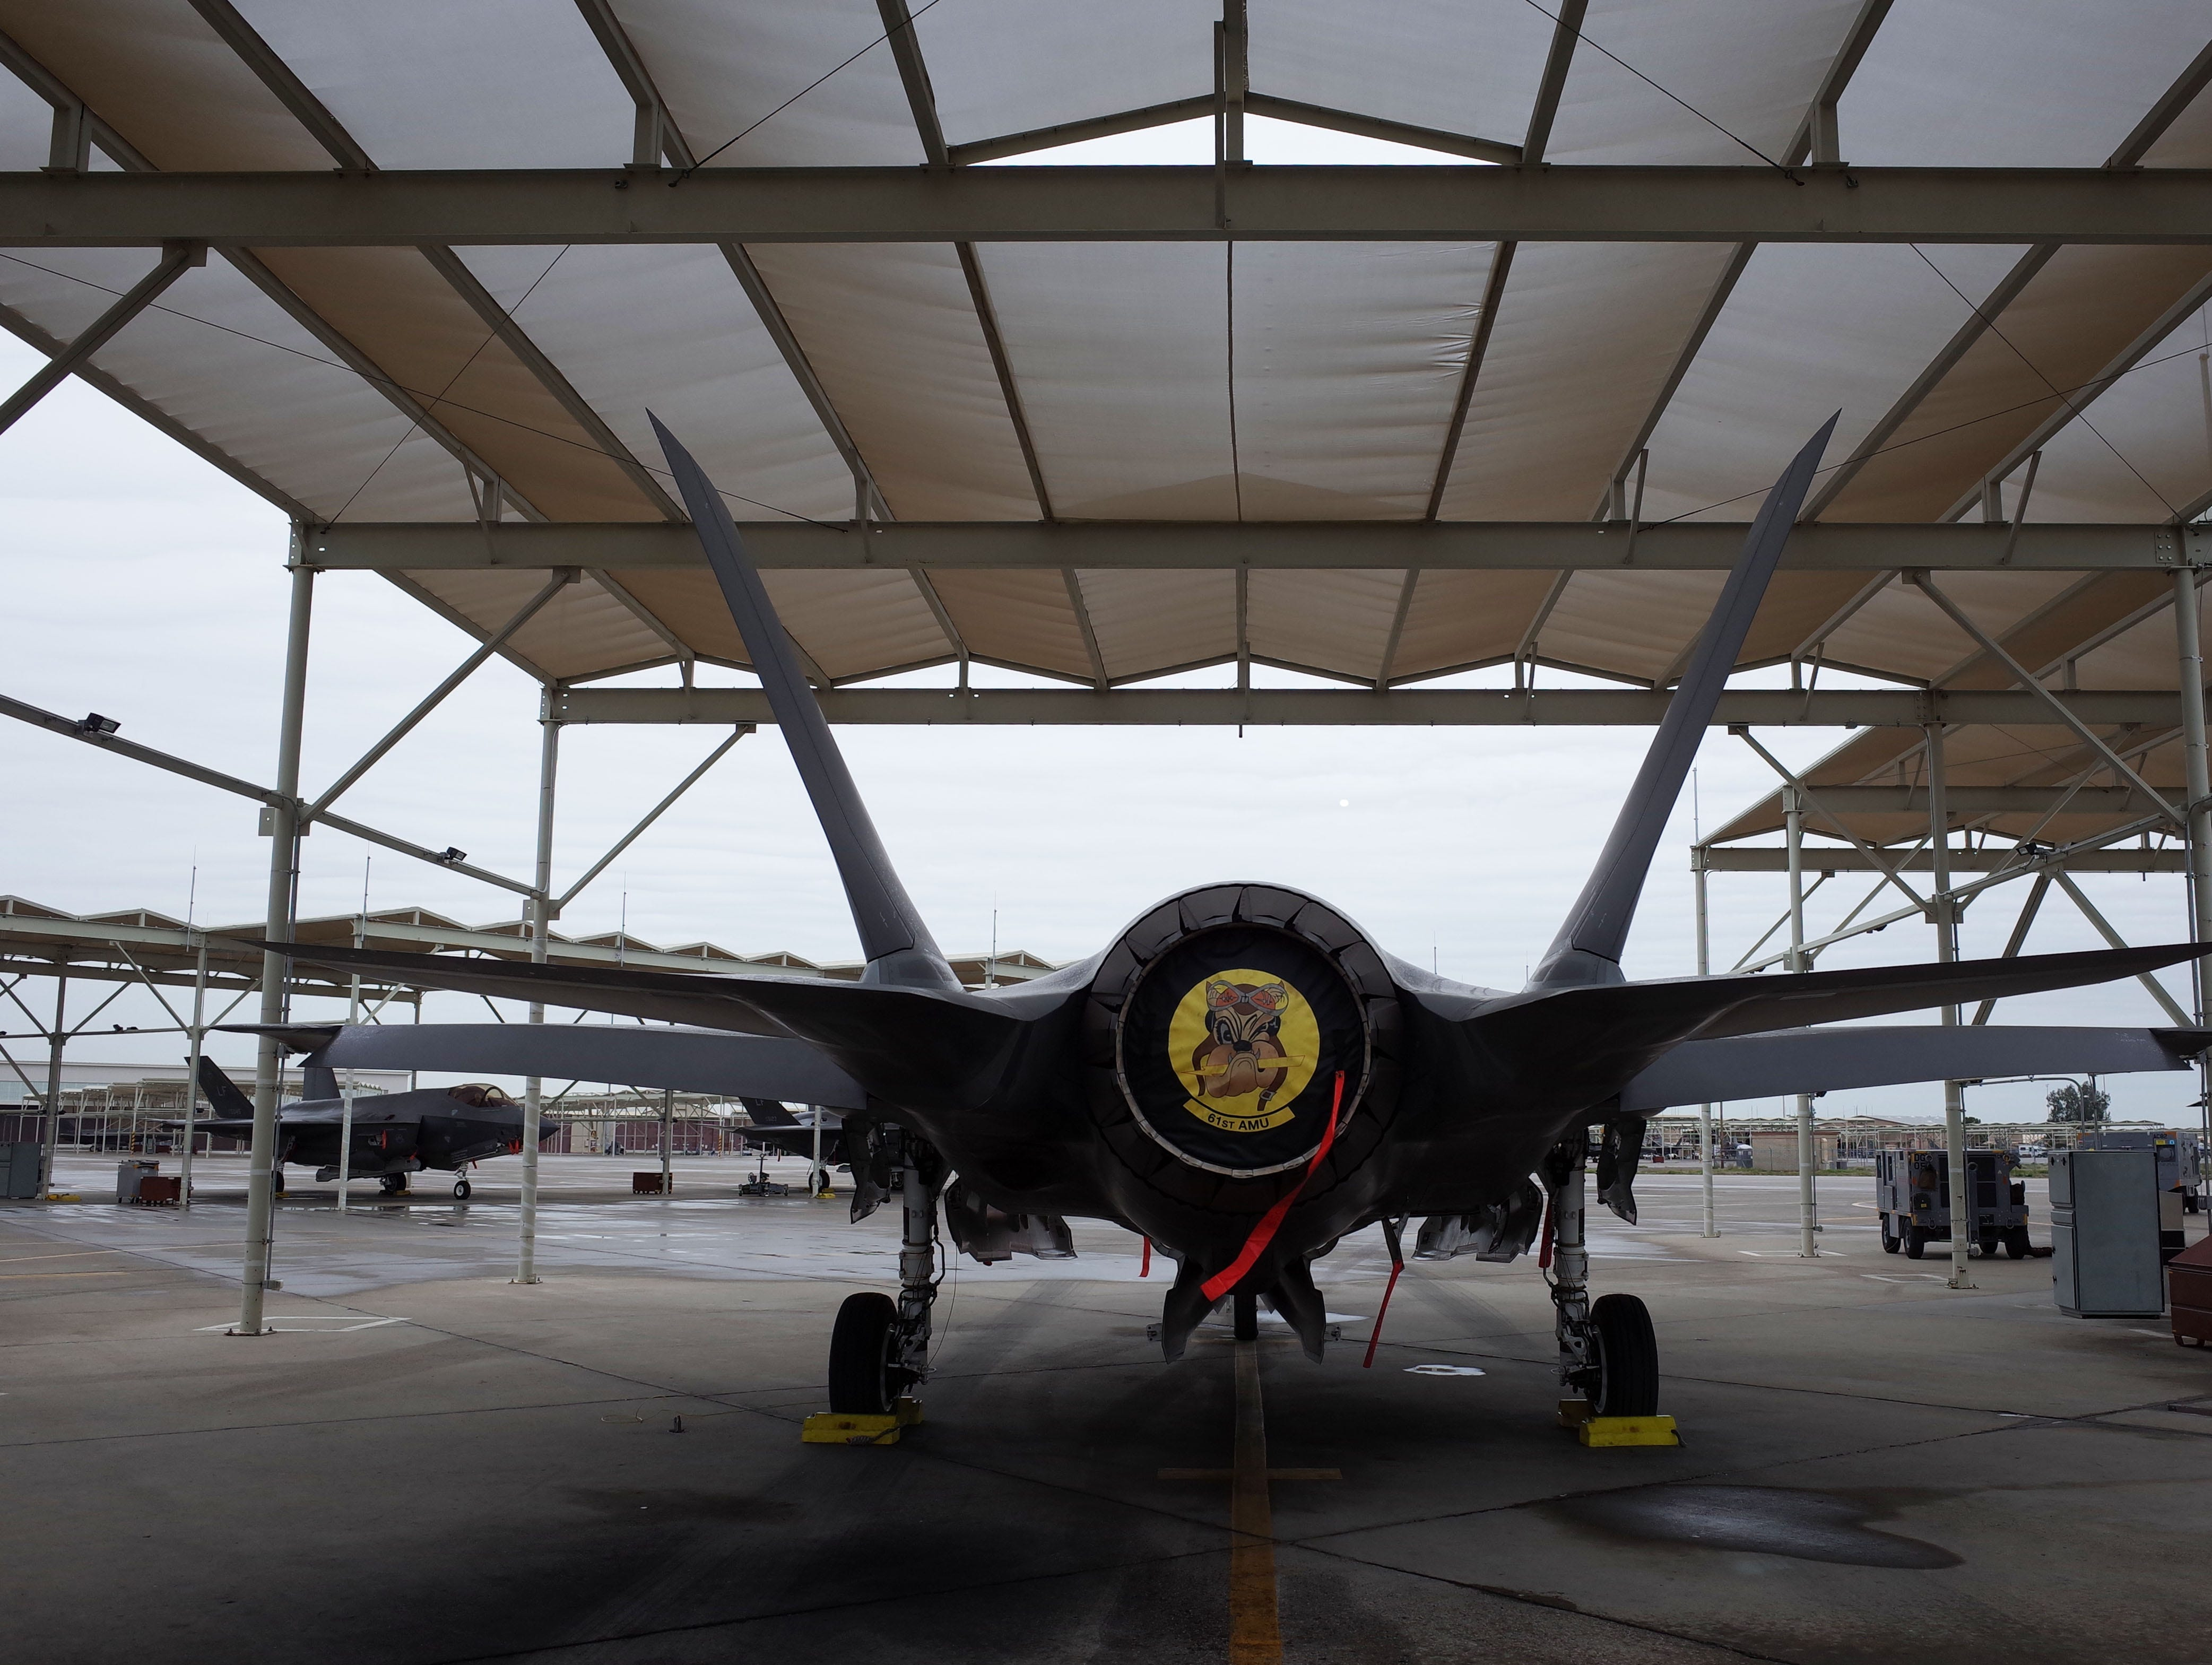 The F-35A can travel at mach 1.6, faster than the speed of sound, according to manufacturer Lockheed Martin. The emblem on the rear of the jet is for the 61st fighter squadron at Luke.